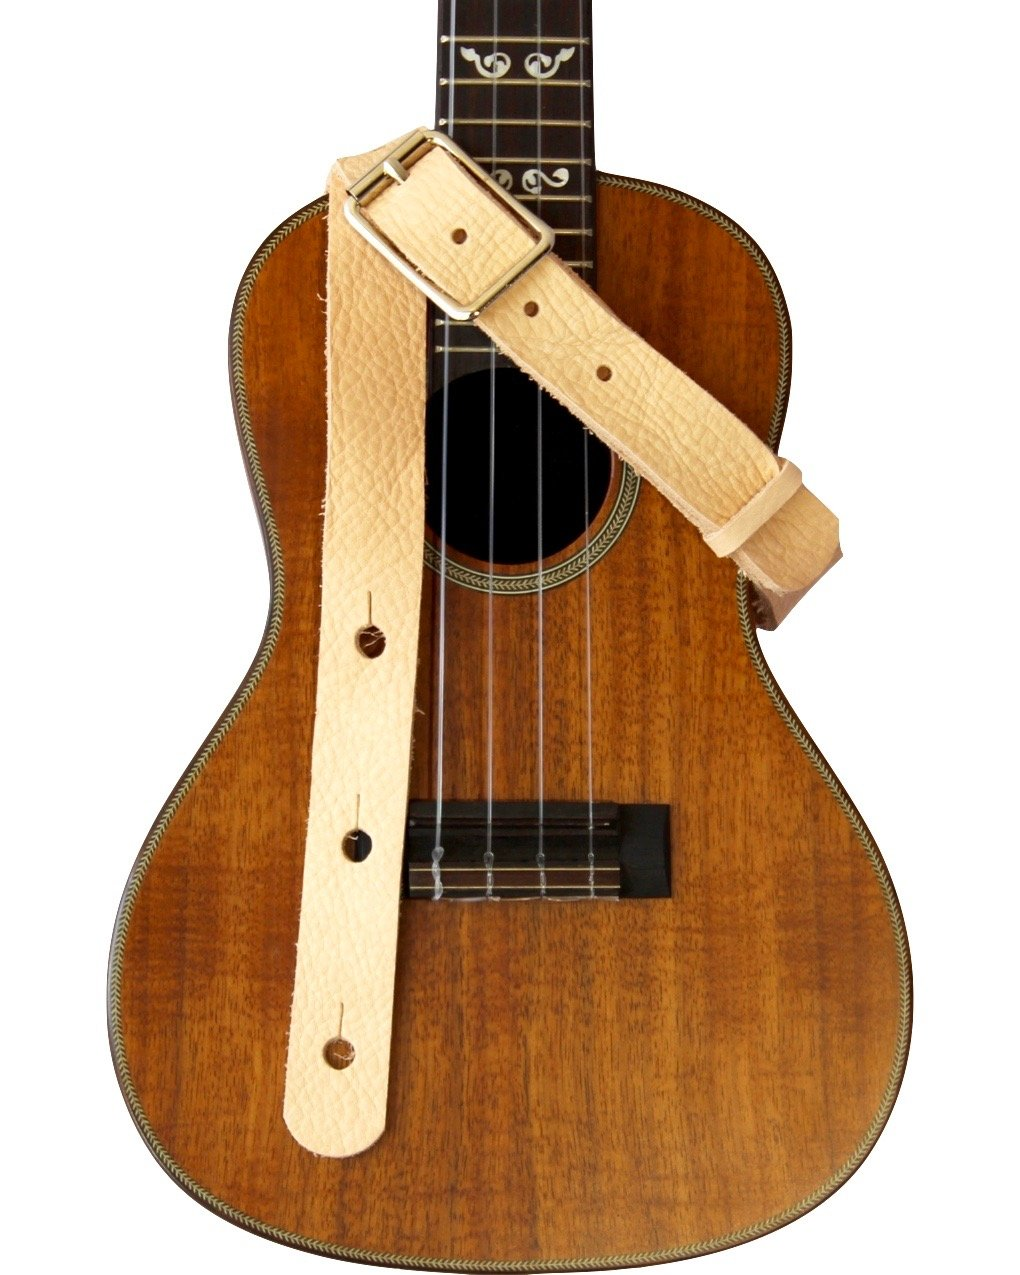 ST 1 All Leather Ukulele Strap - Natural